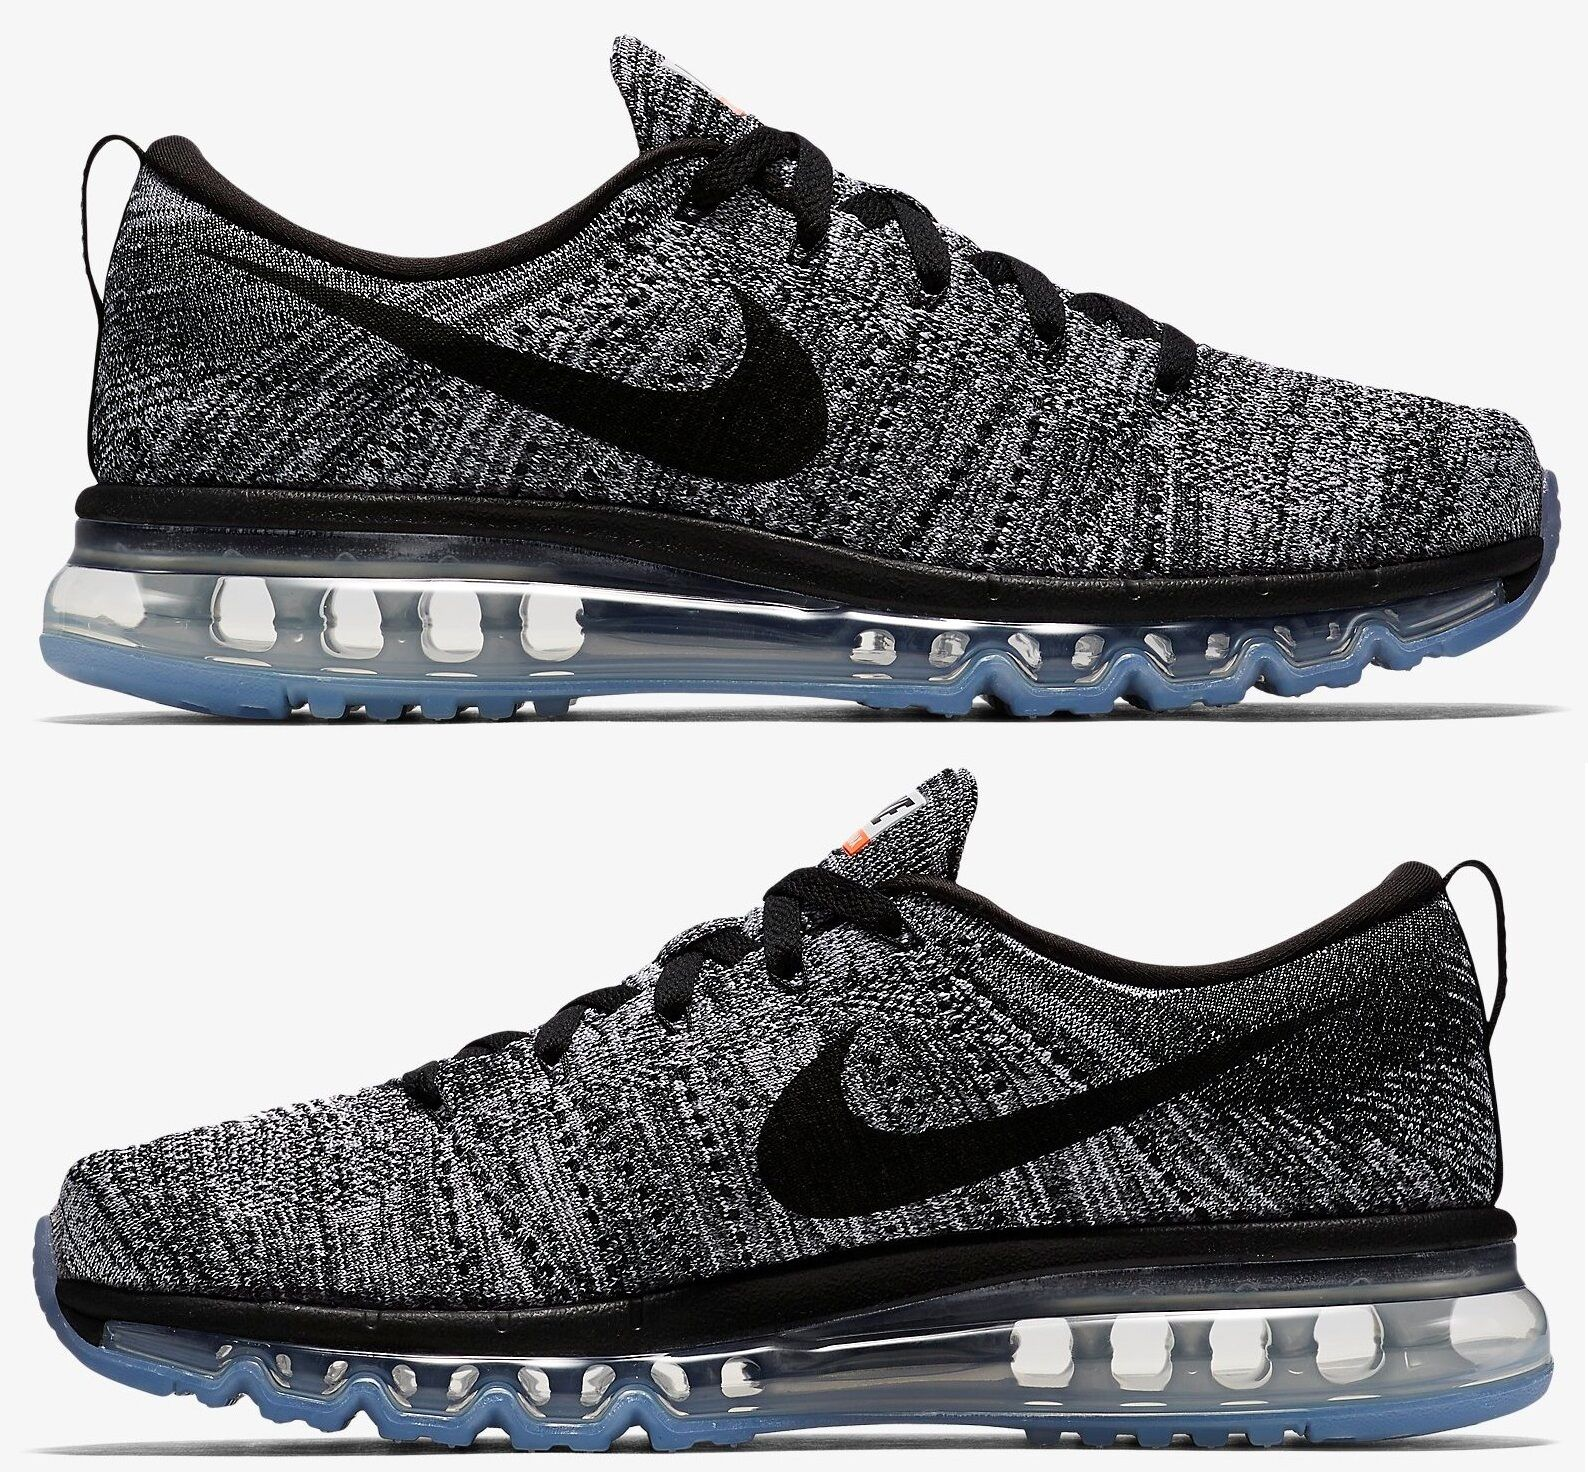 NIKE FLYKNIT AIR MAX MEN's RUNNING M MESH WHITE - BLACK - COOL GREY AUTHENTIC SZ